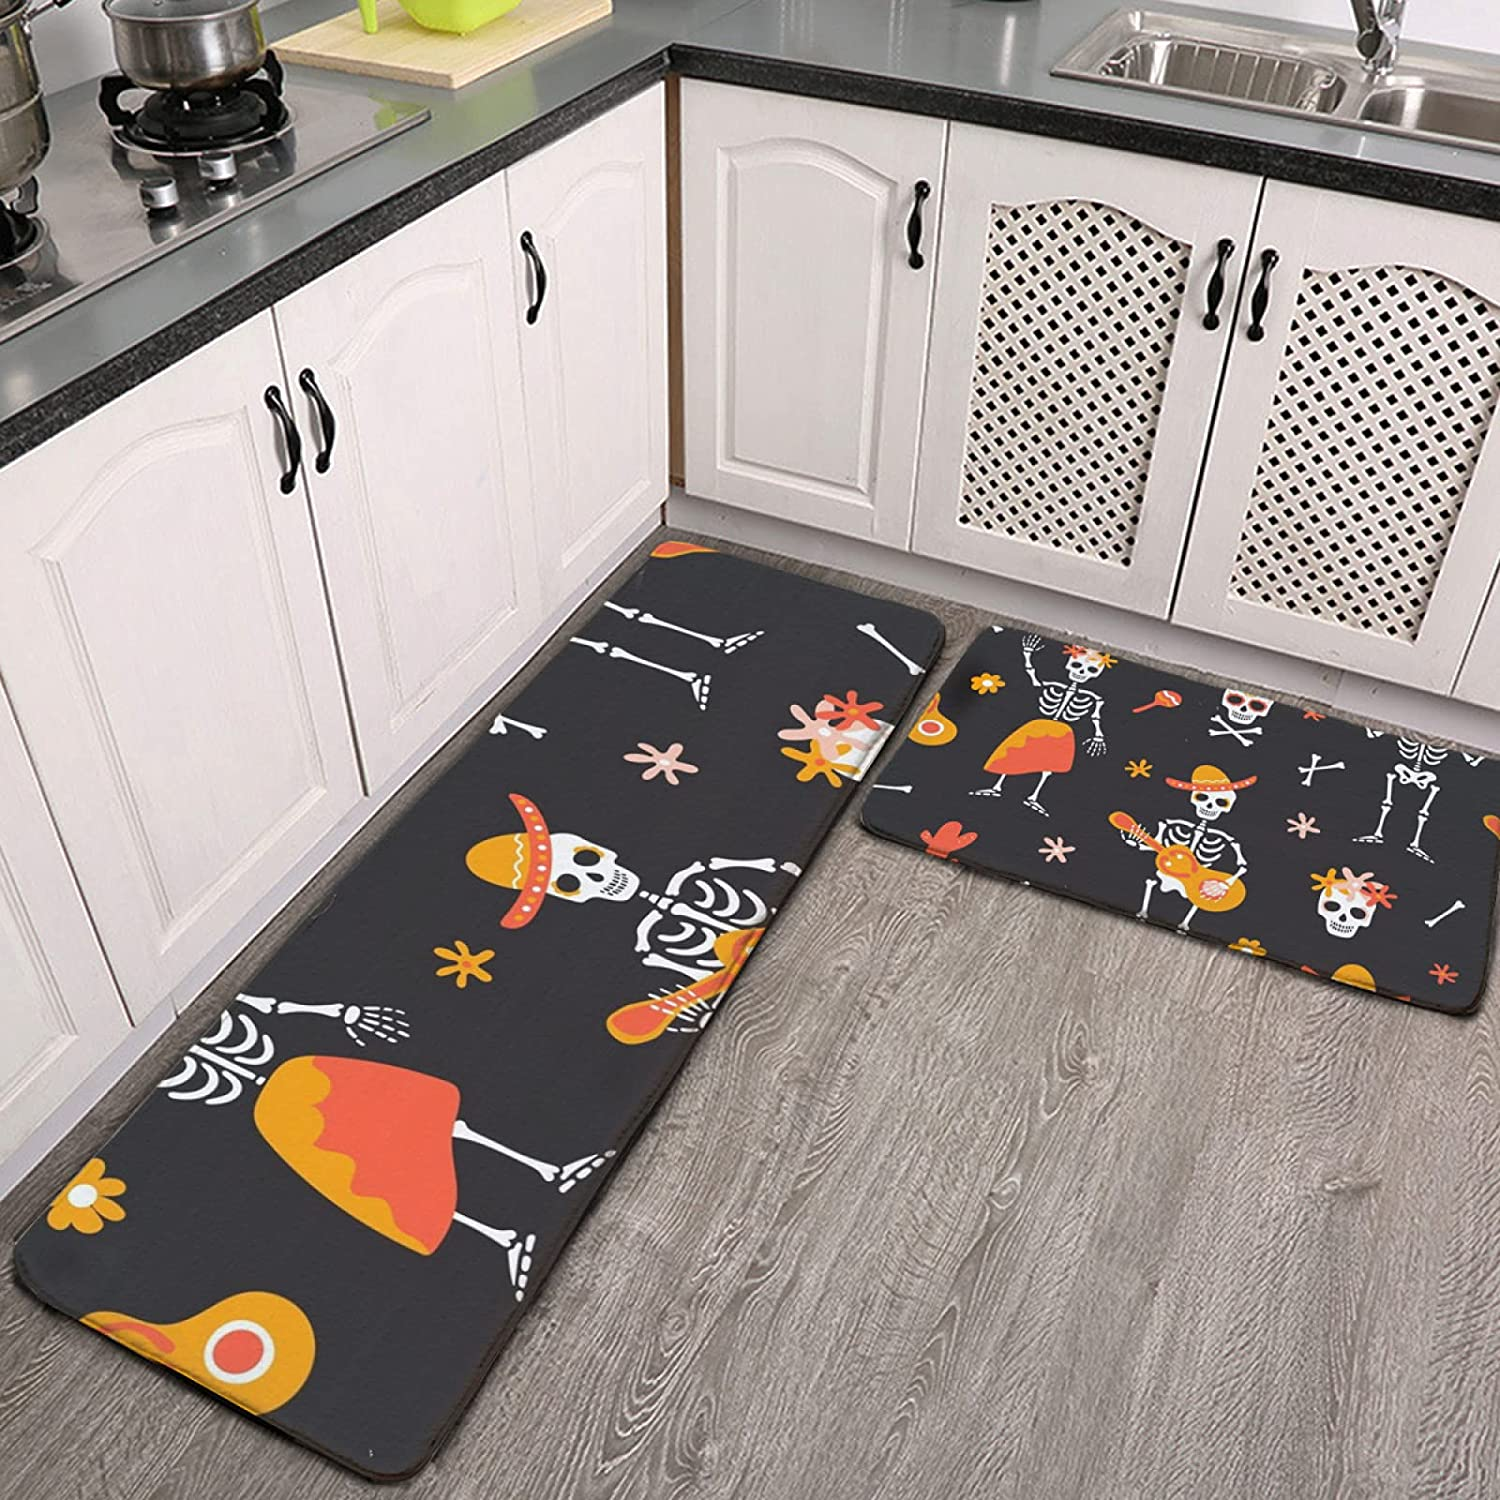 OcuteO Clearance SALE! Limited time! Kitchen Limited Special Price Rugs and Mats Set 2 Day Mexican Of Dead Piece The